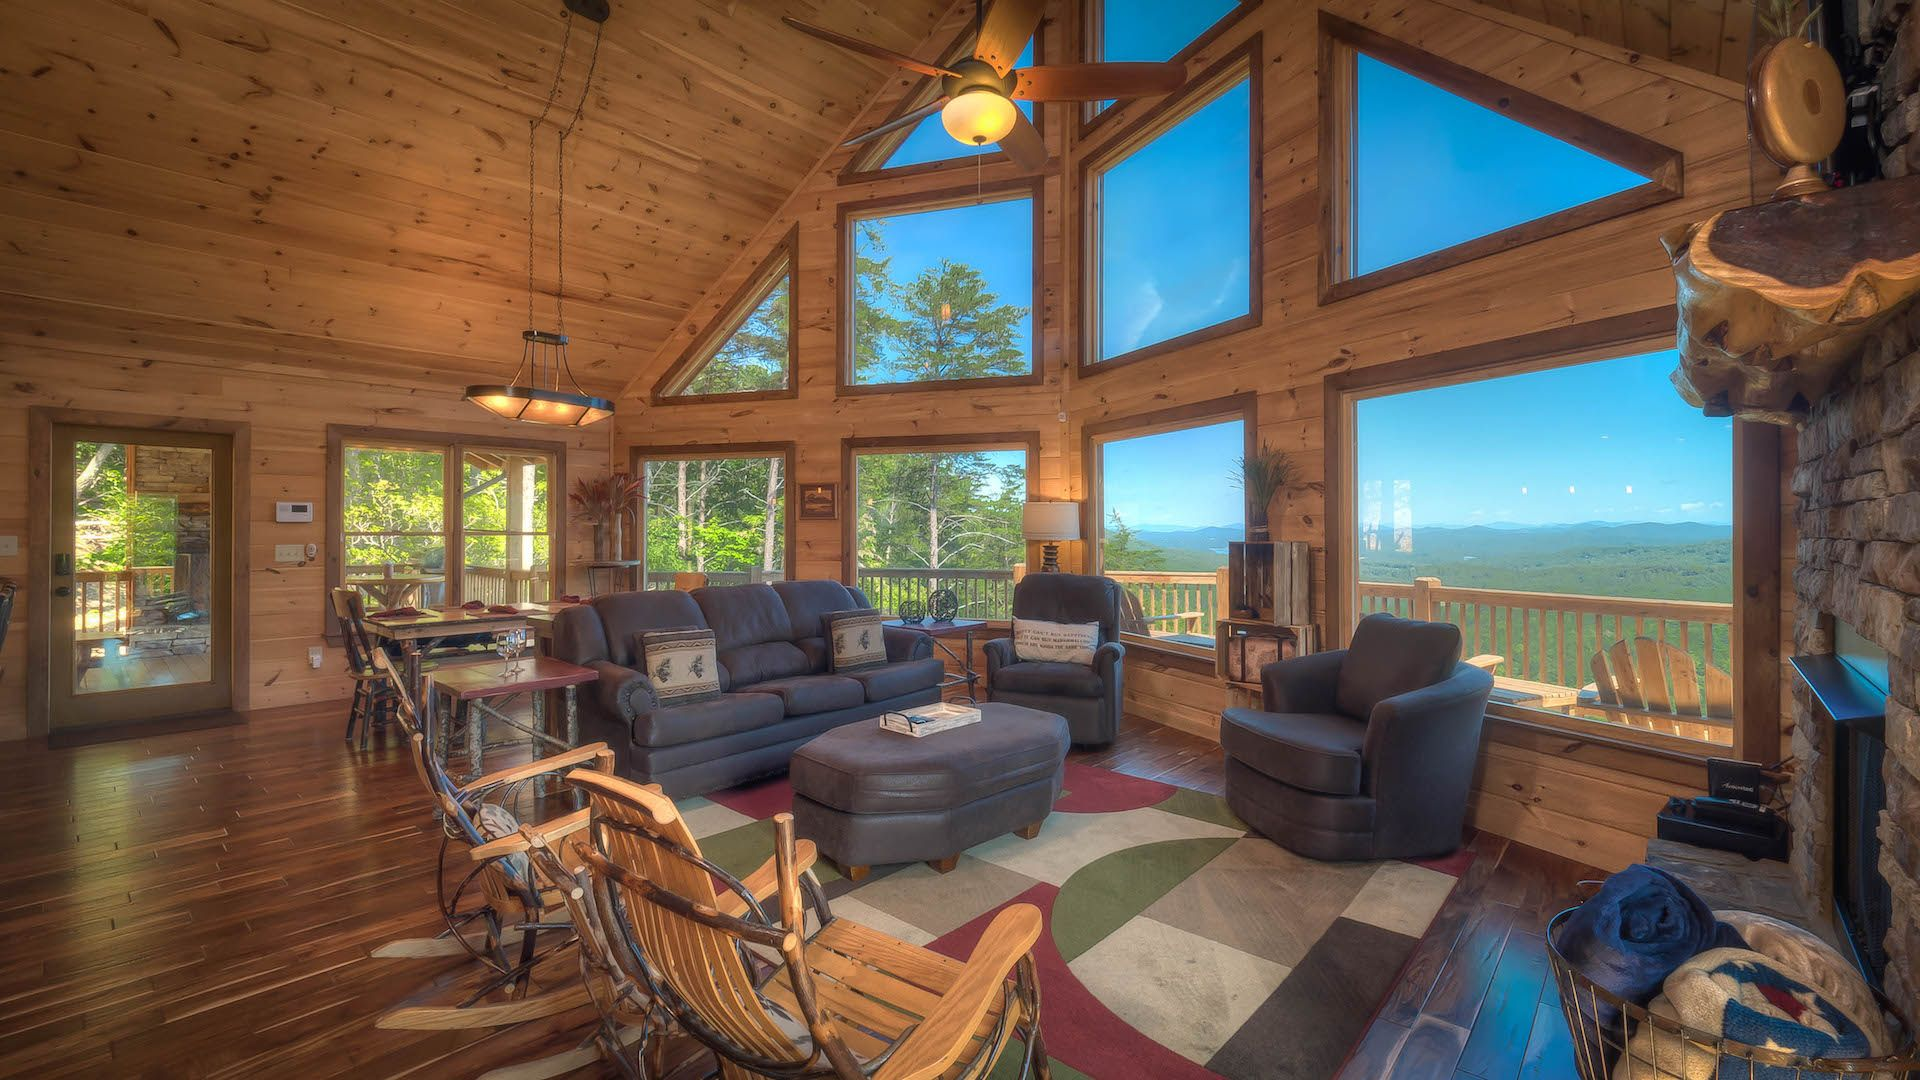 in pin serenity ridge georgia mountain blue rental cabin top weekend cabins rentals ga